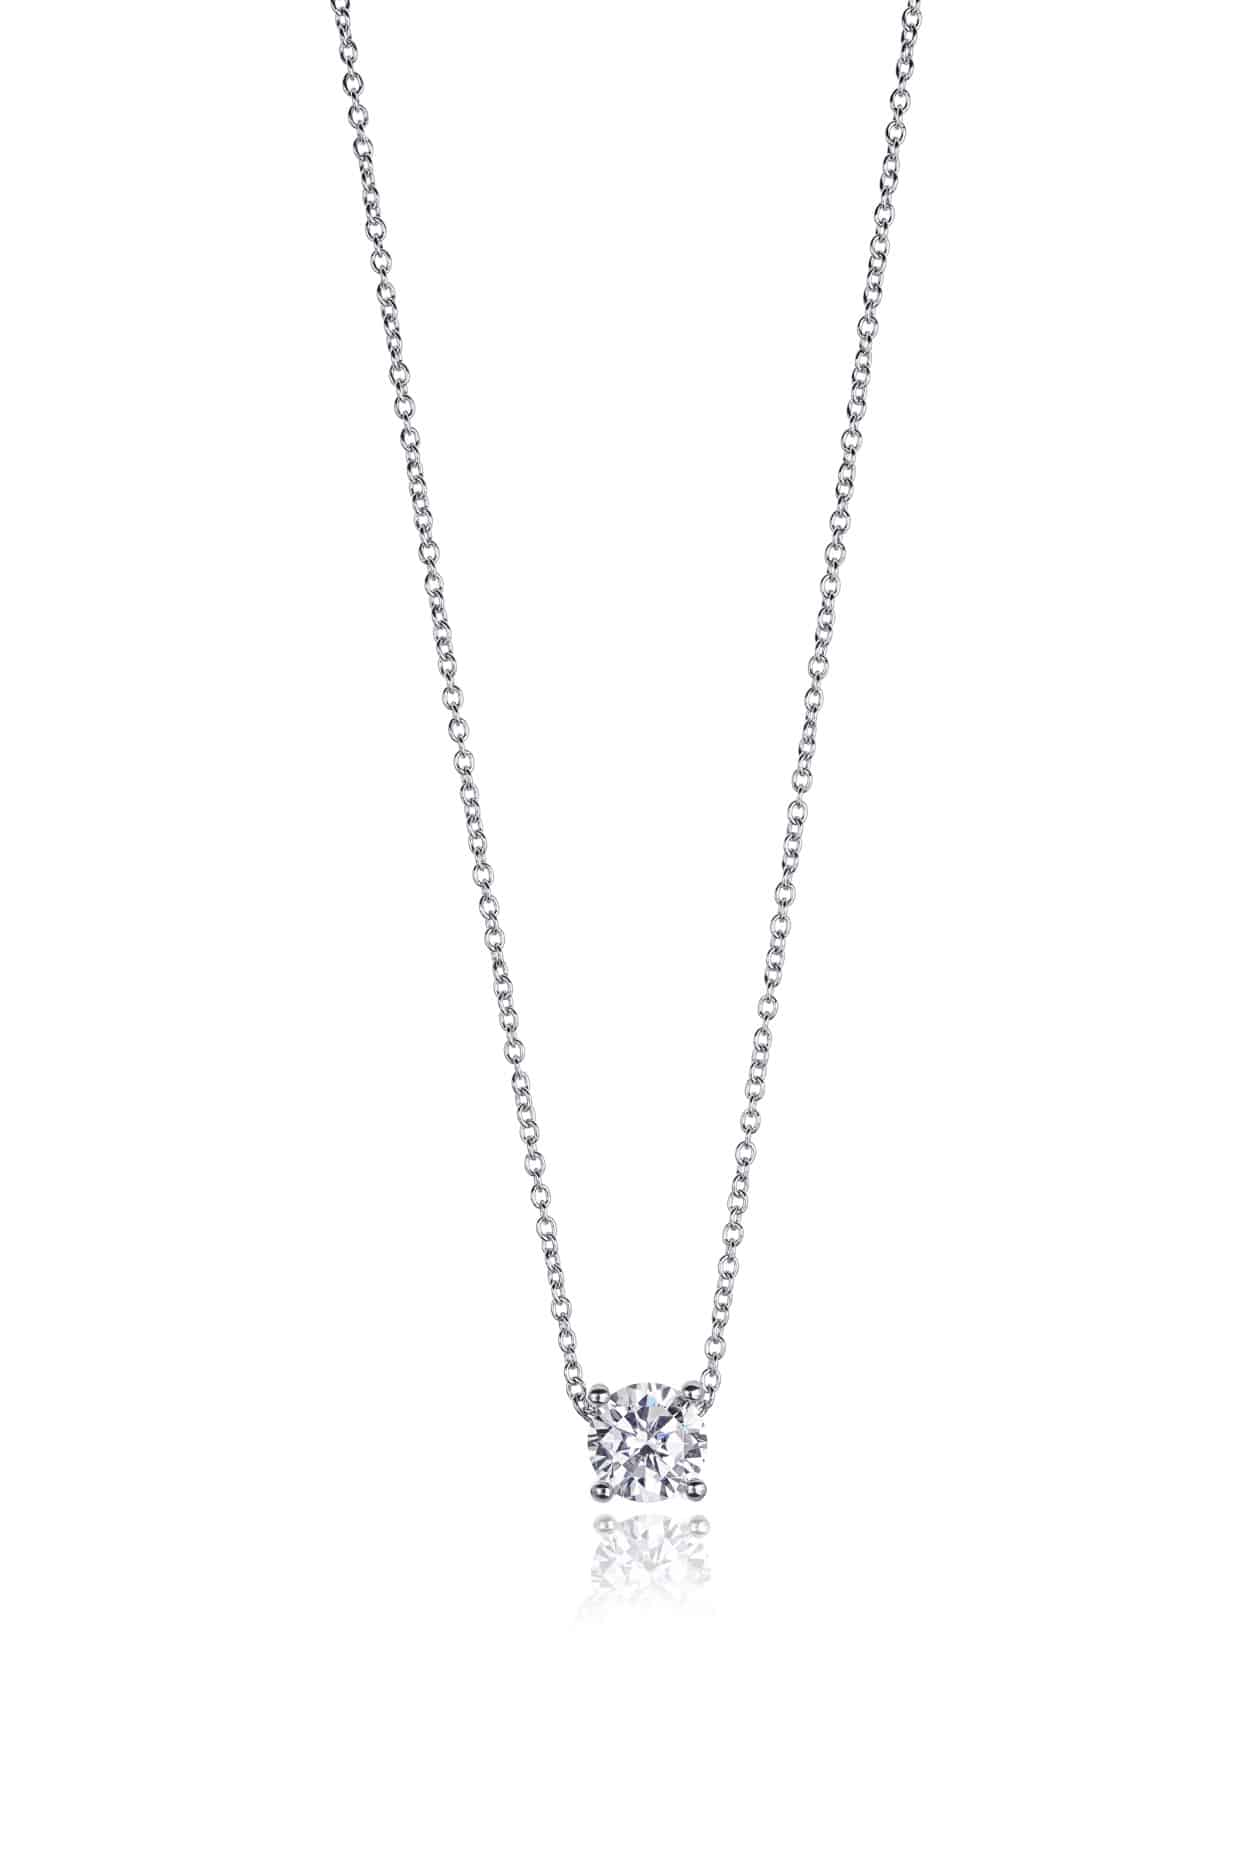 avanti womens sapphire diamond white from necklaces image slider and necklace